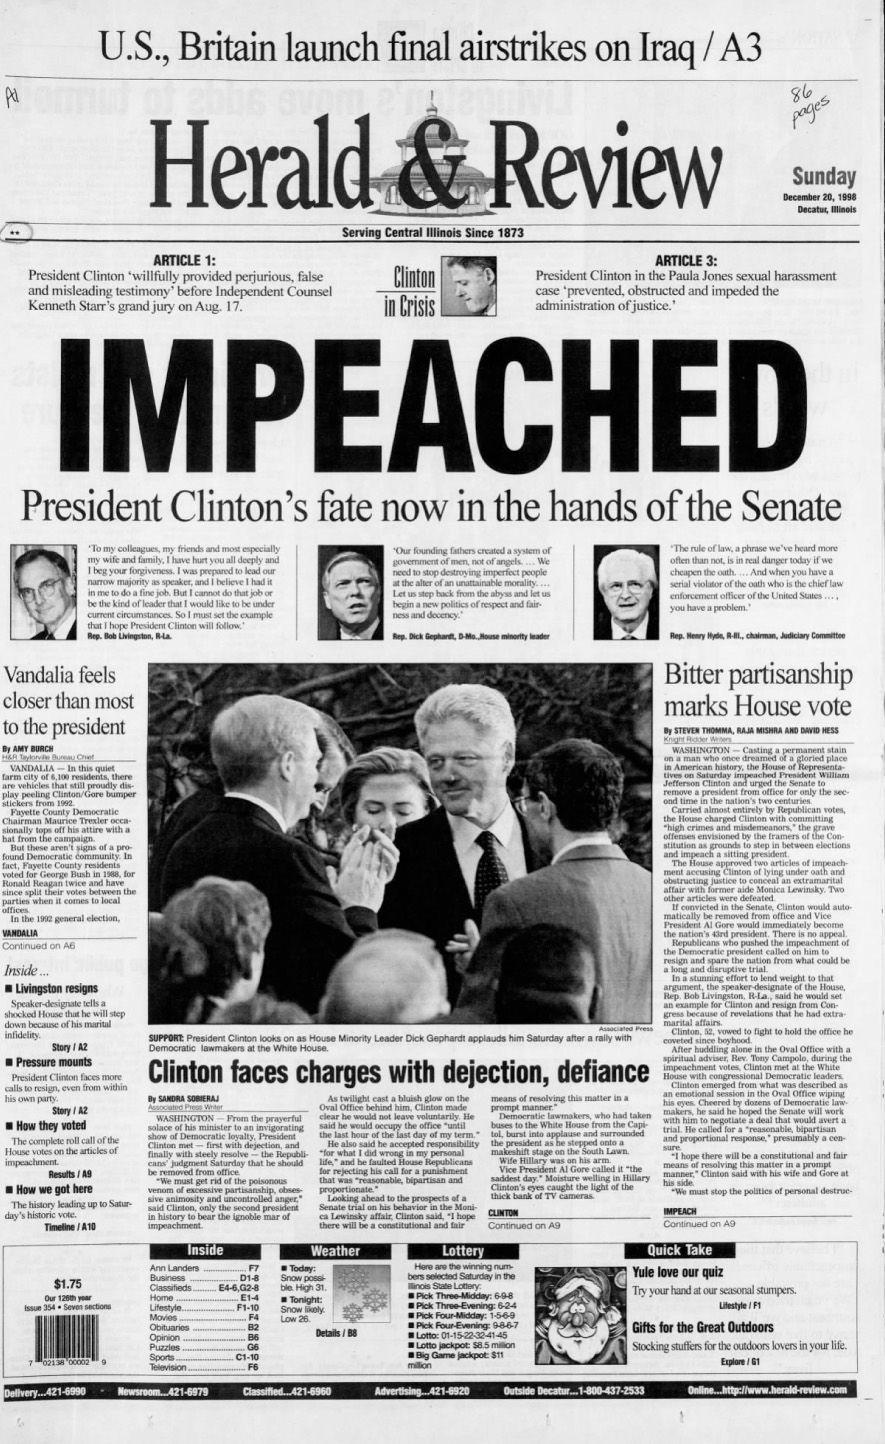 Impeached A Look At Front Pages From 1998 National Politics Herald Review Com